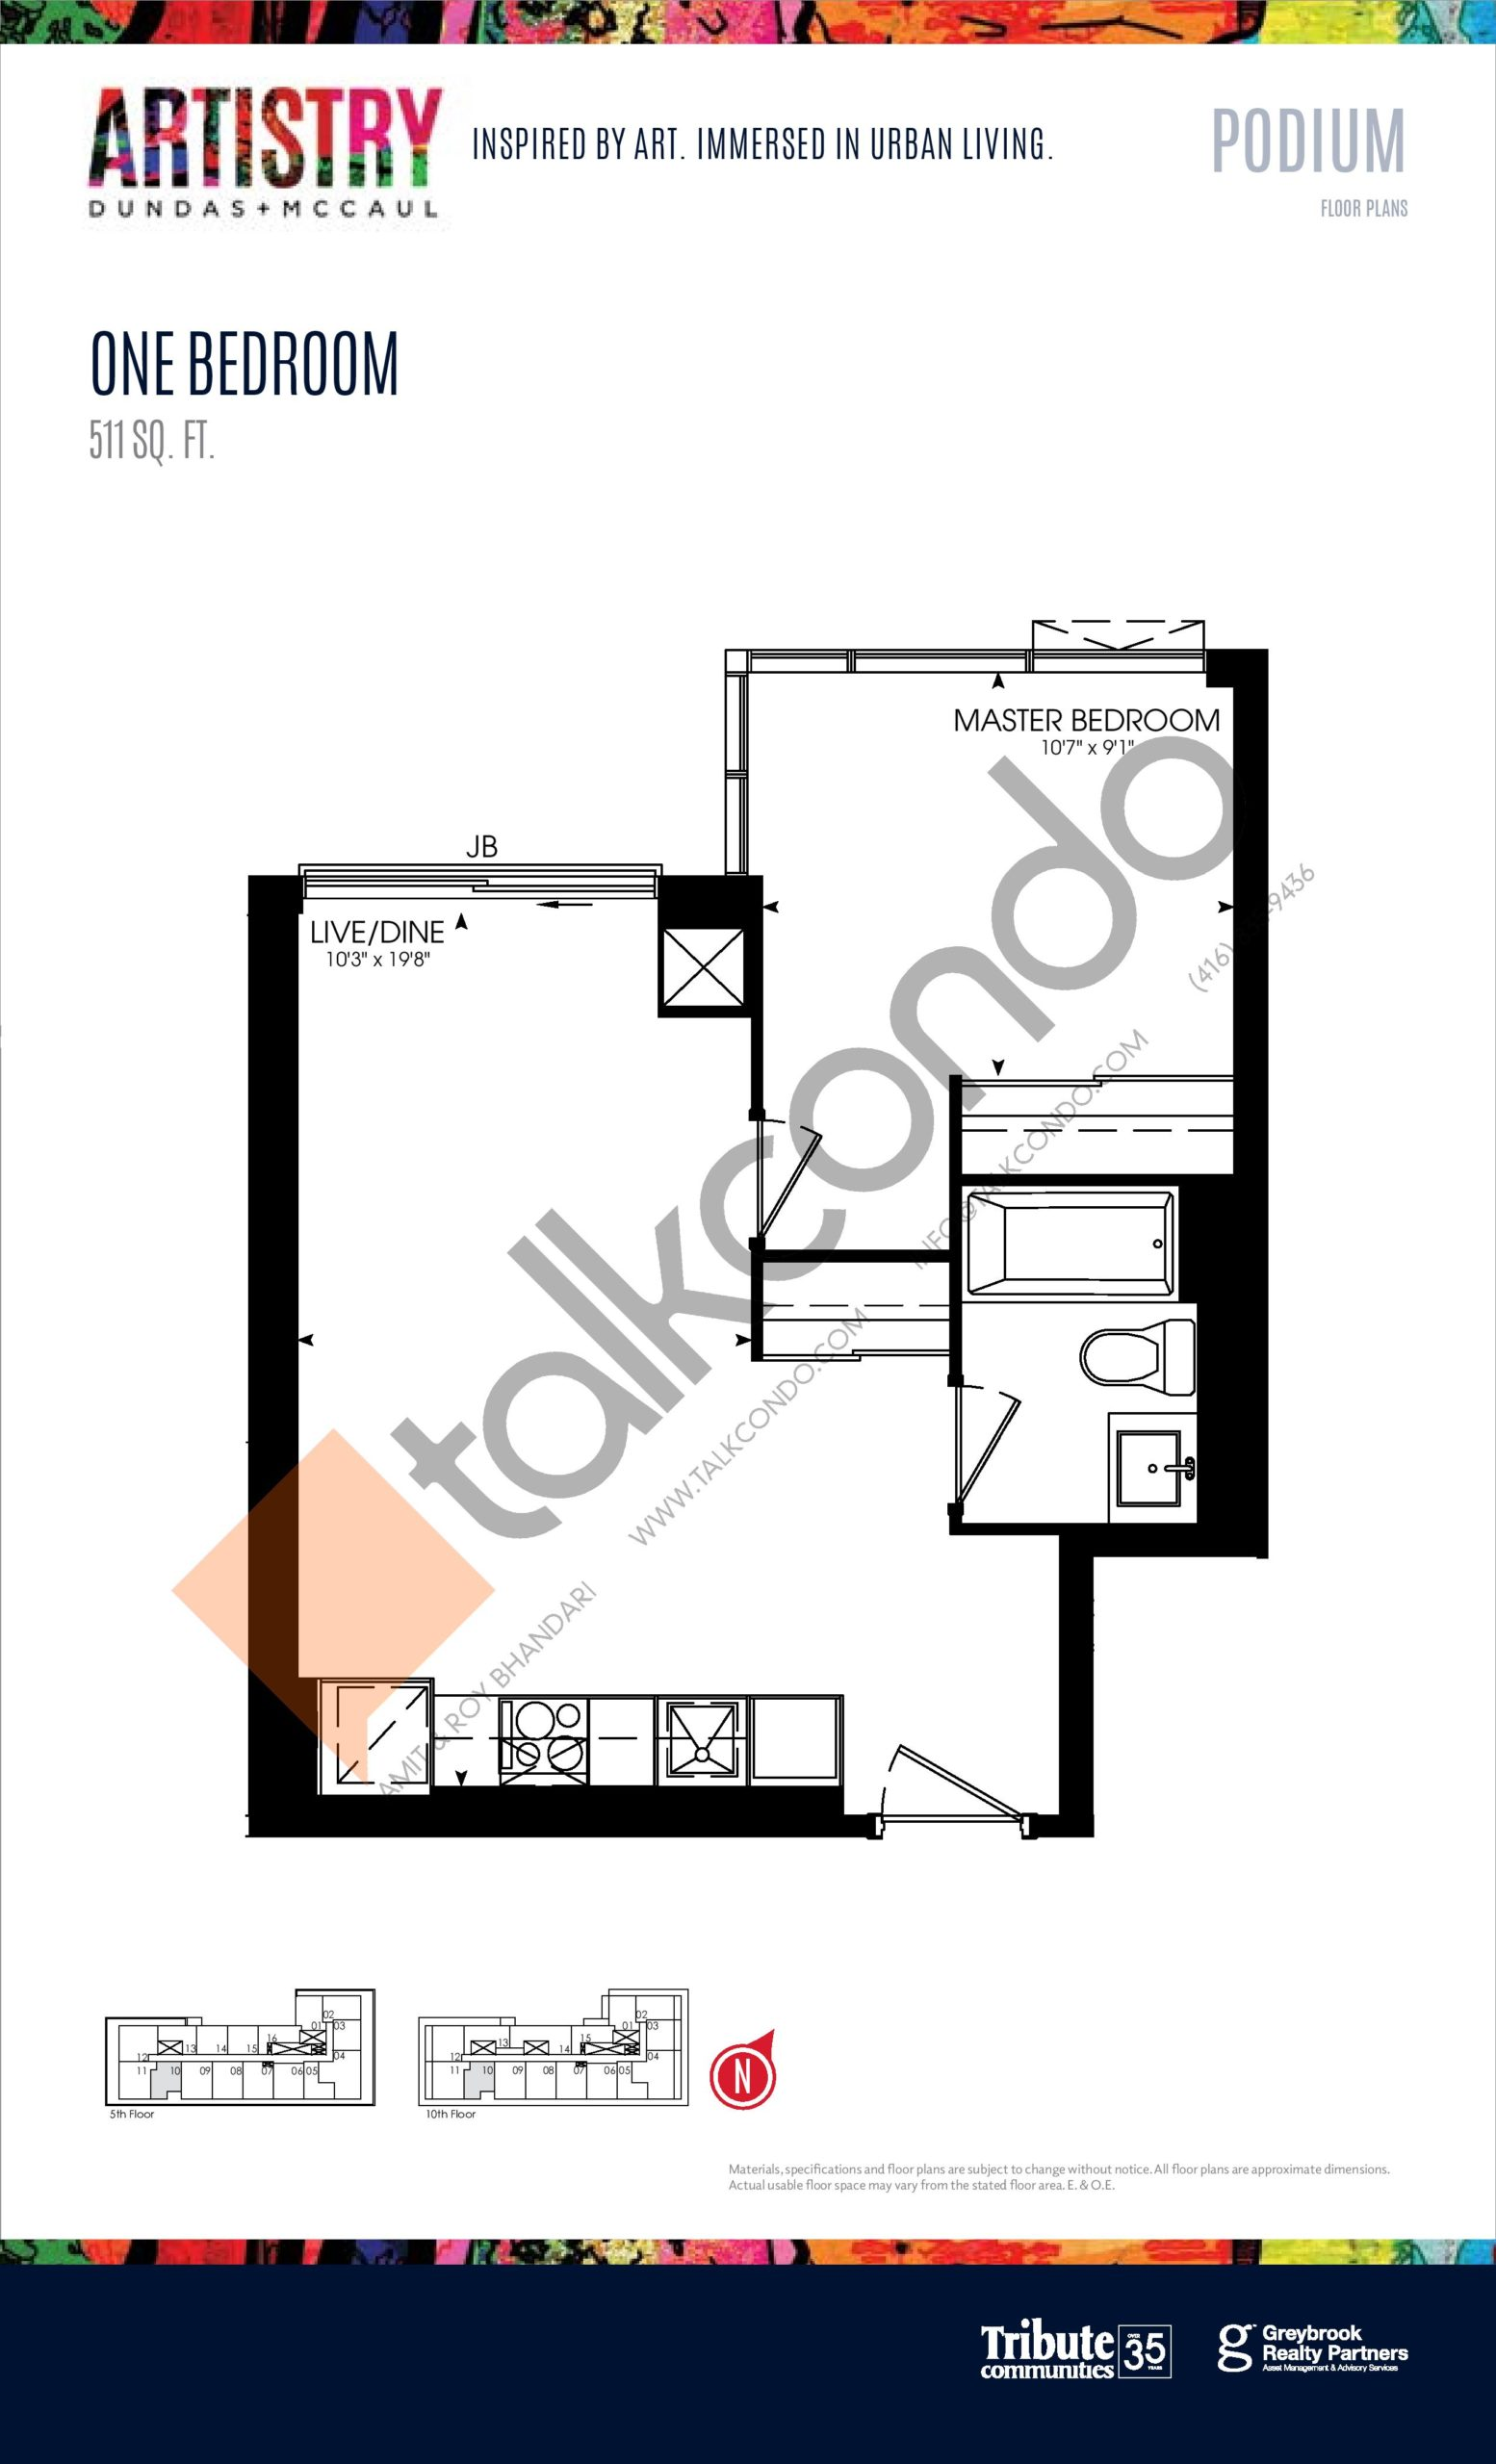 511 sq. ft. - Podium Floor Plan at Artistry Condos - 511 sq.ft